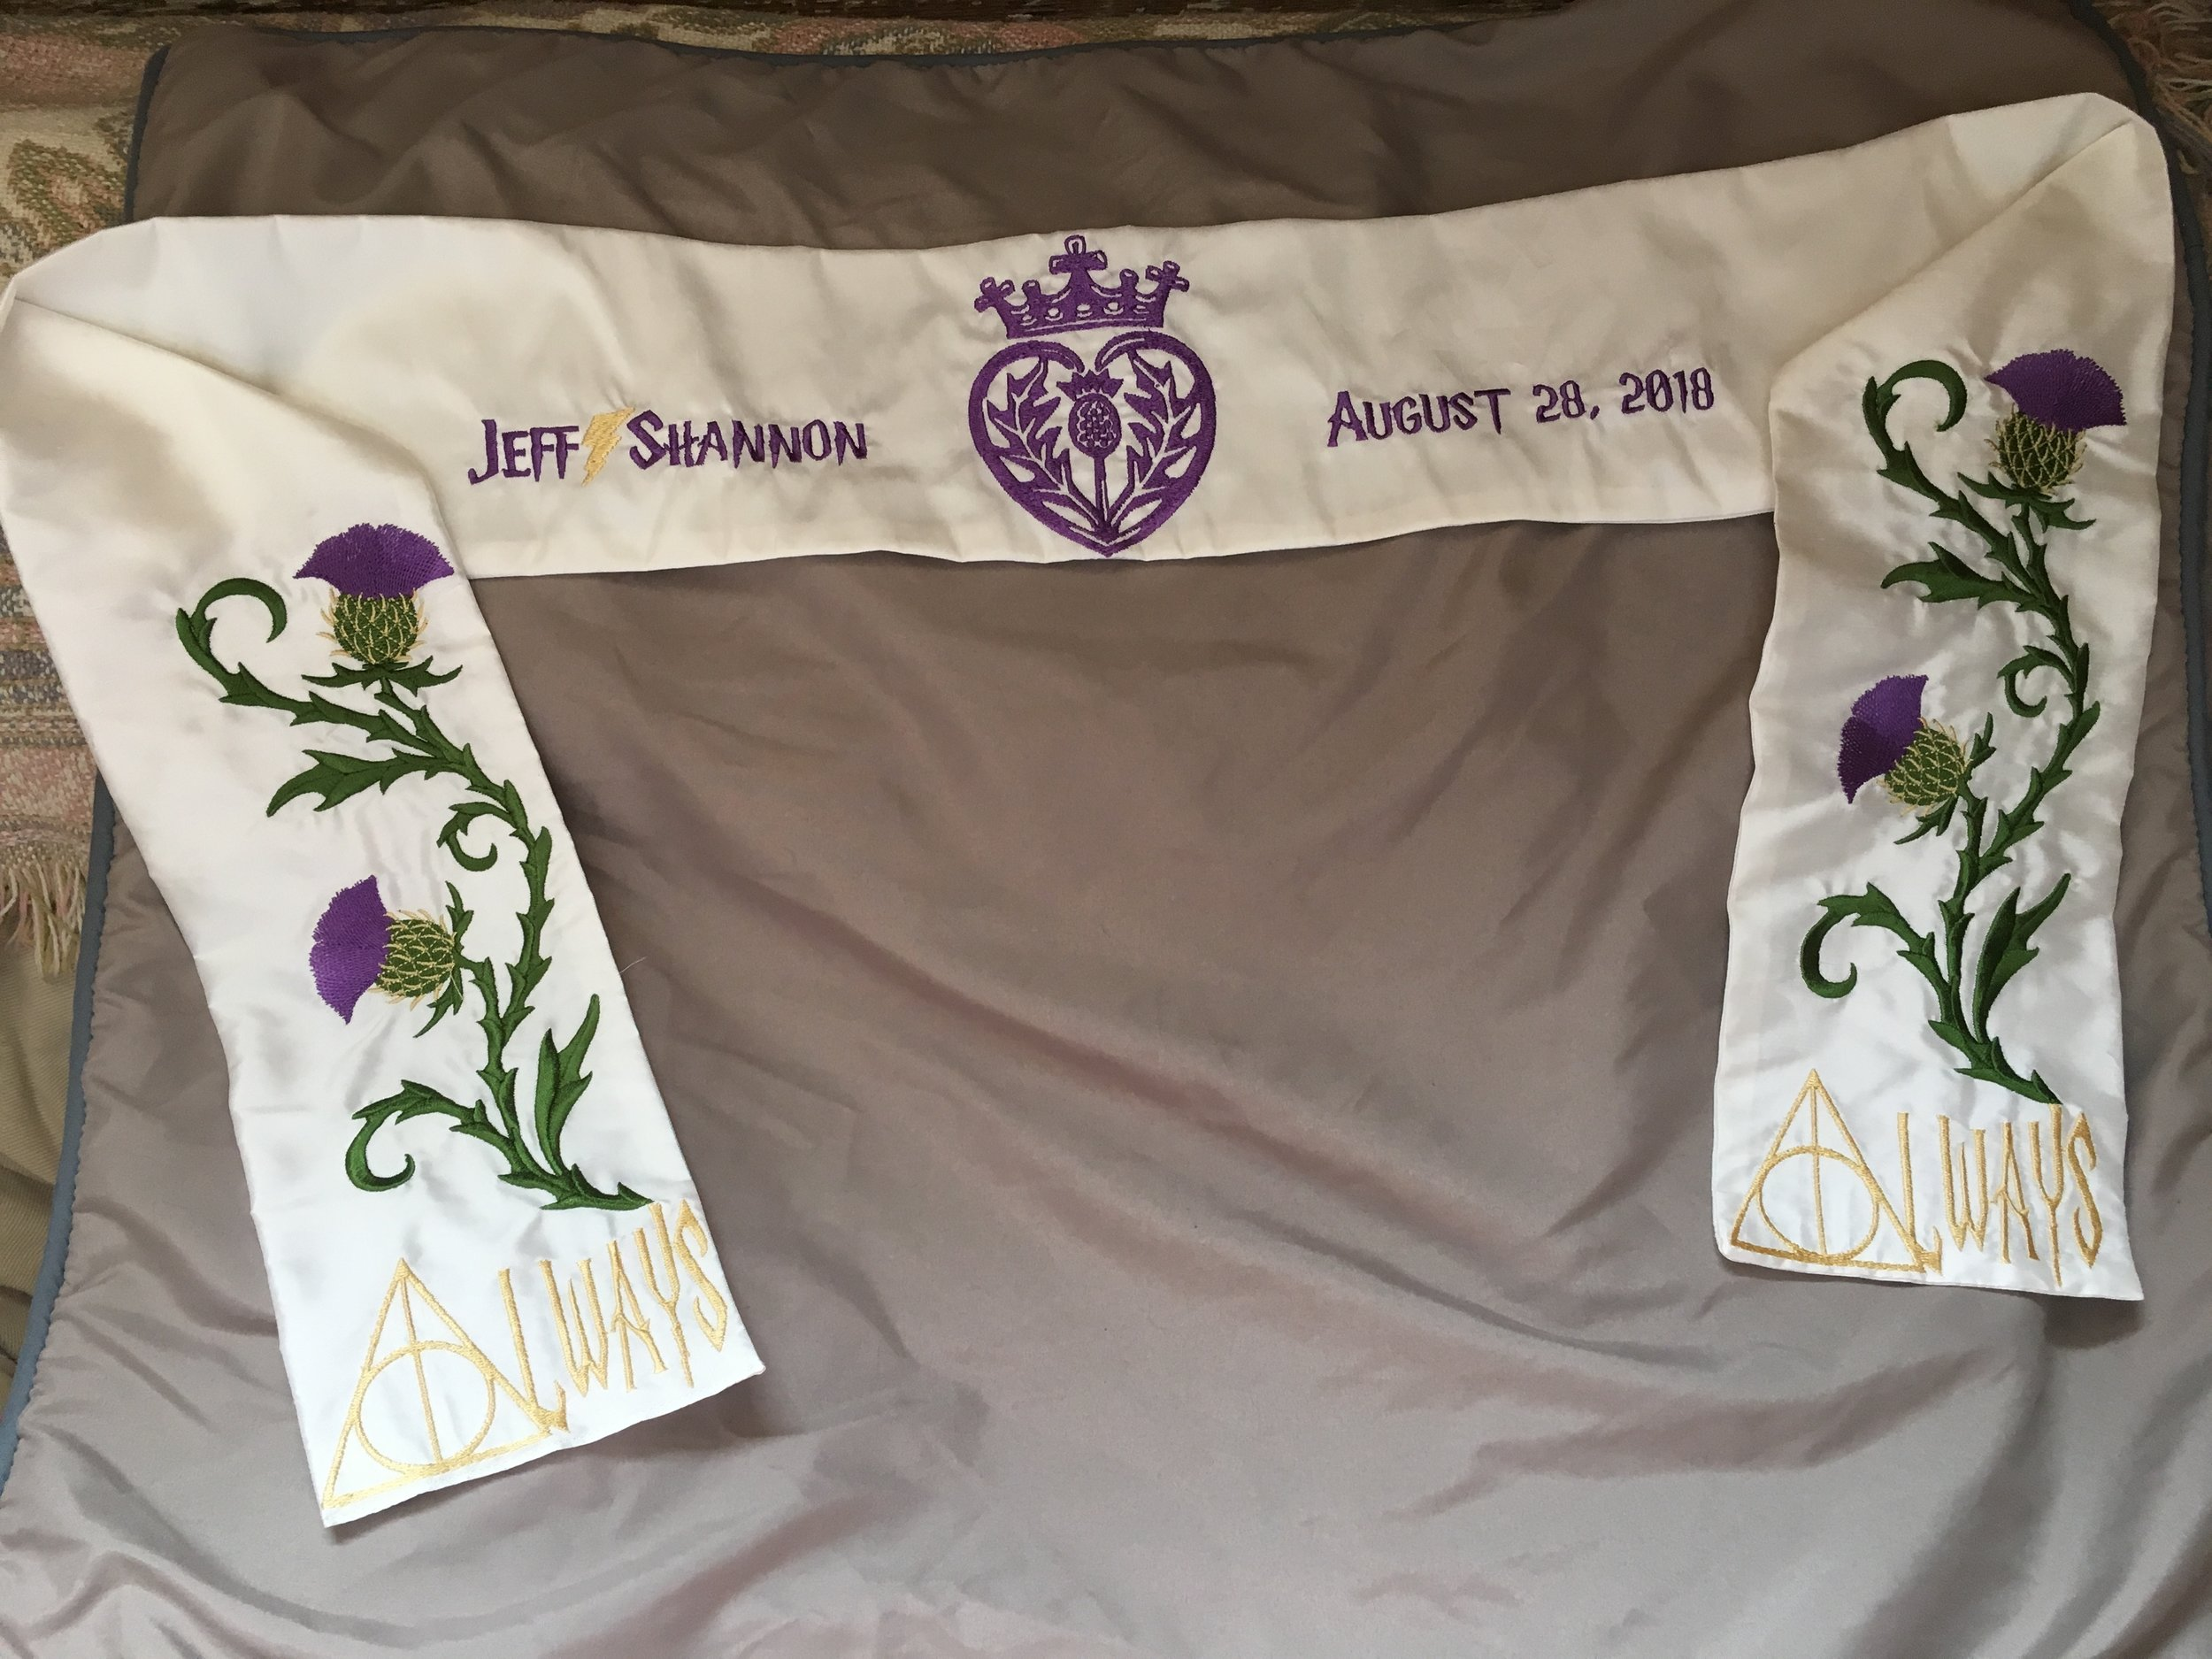 Harry Potter inspirted custom handfasting cloth